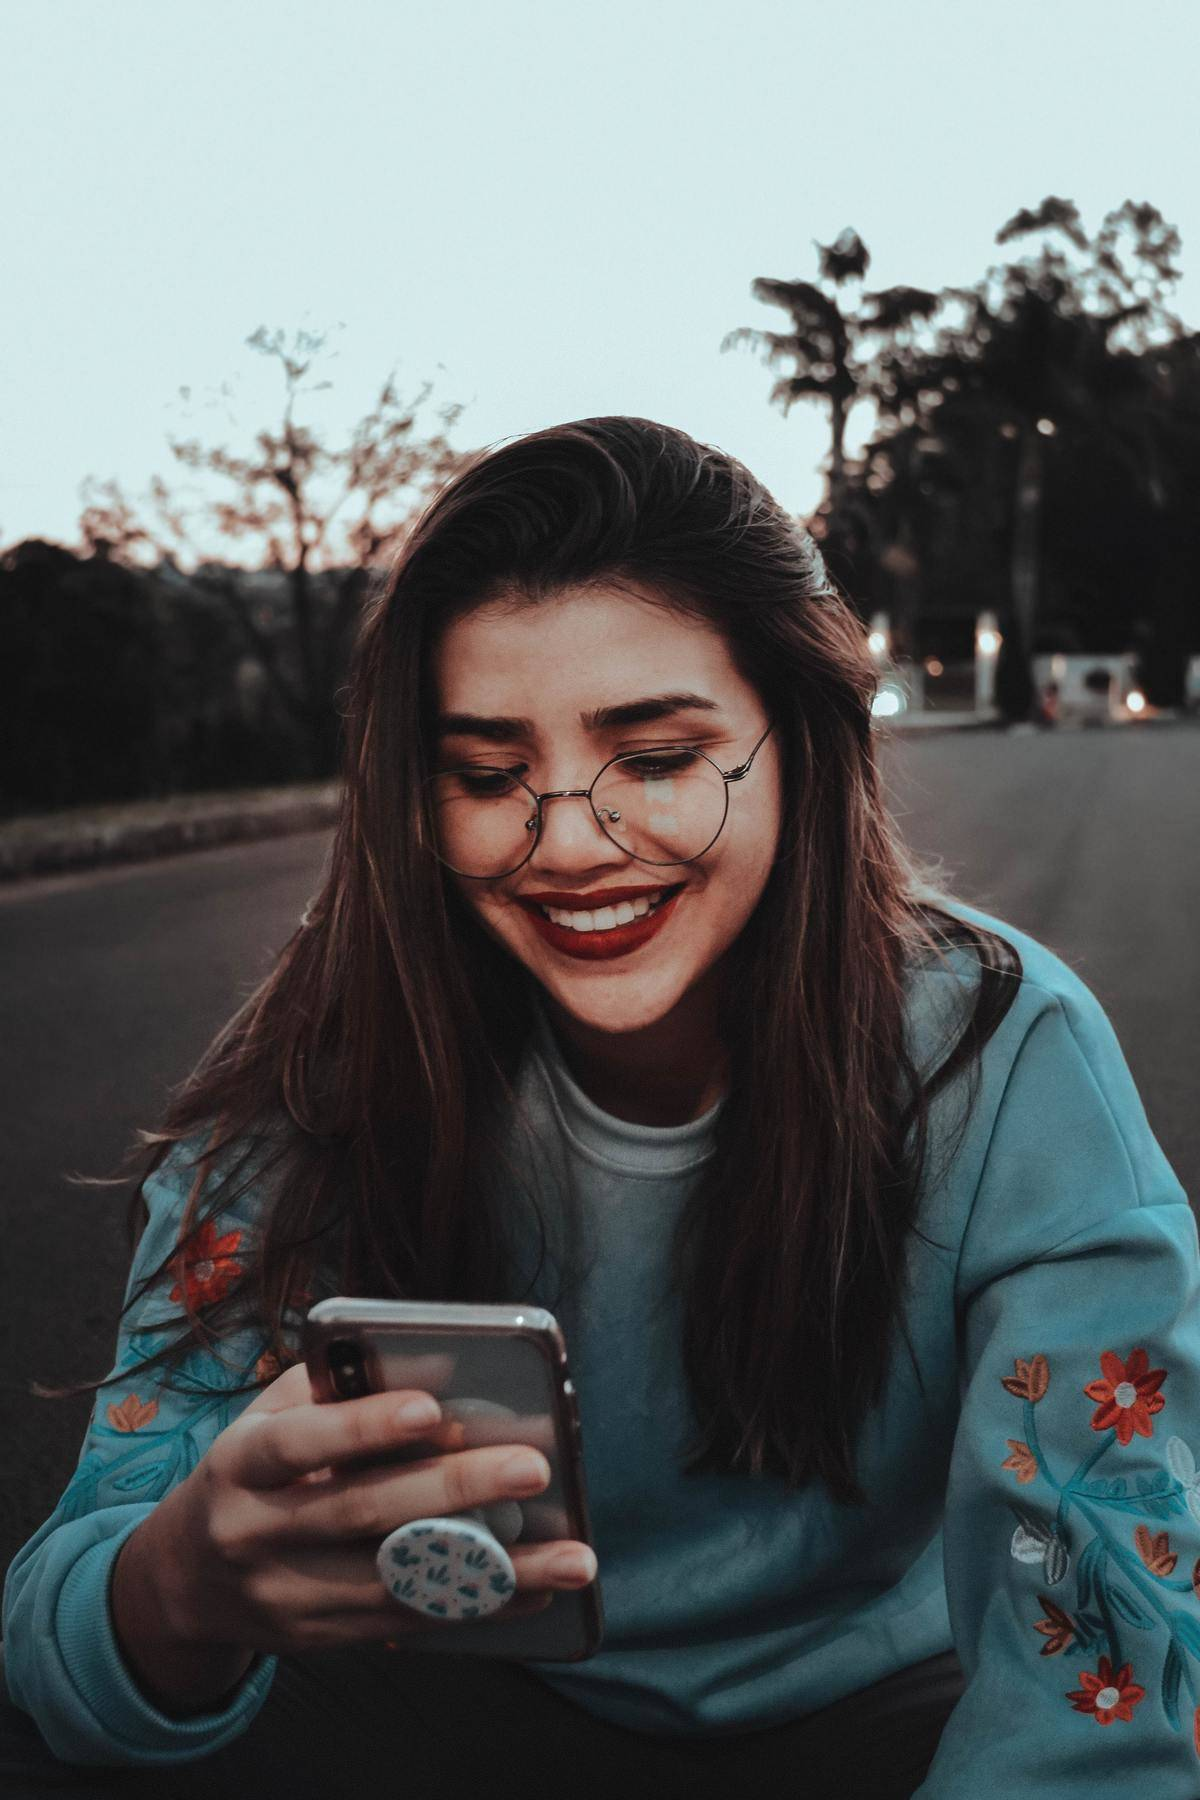 woman smiling and looking at phone texting